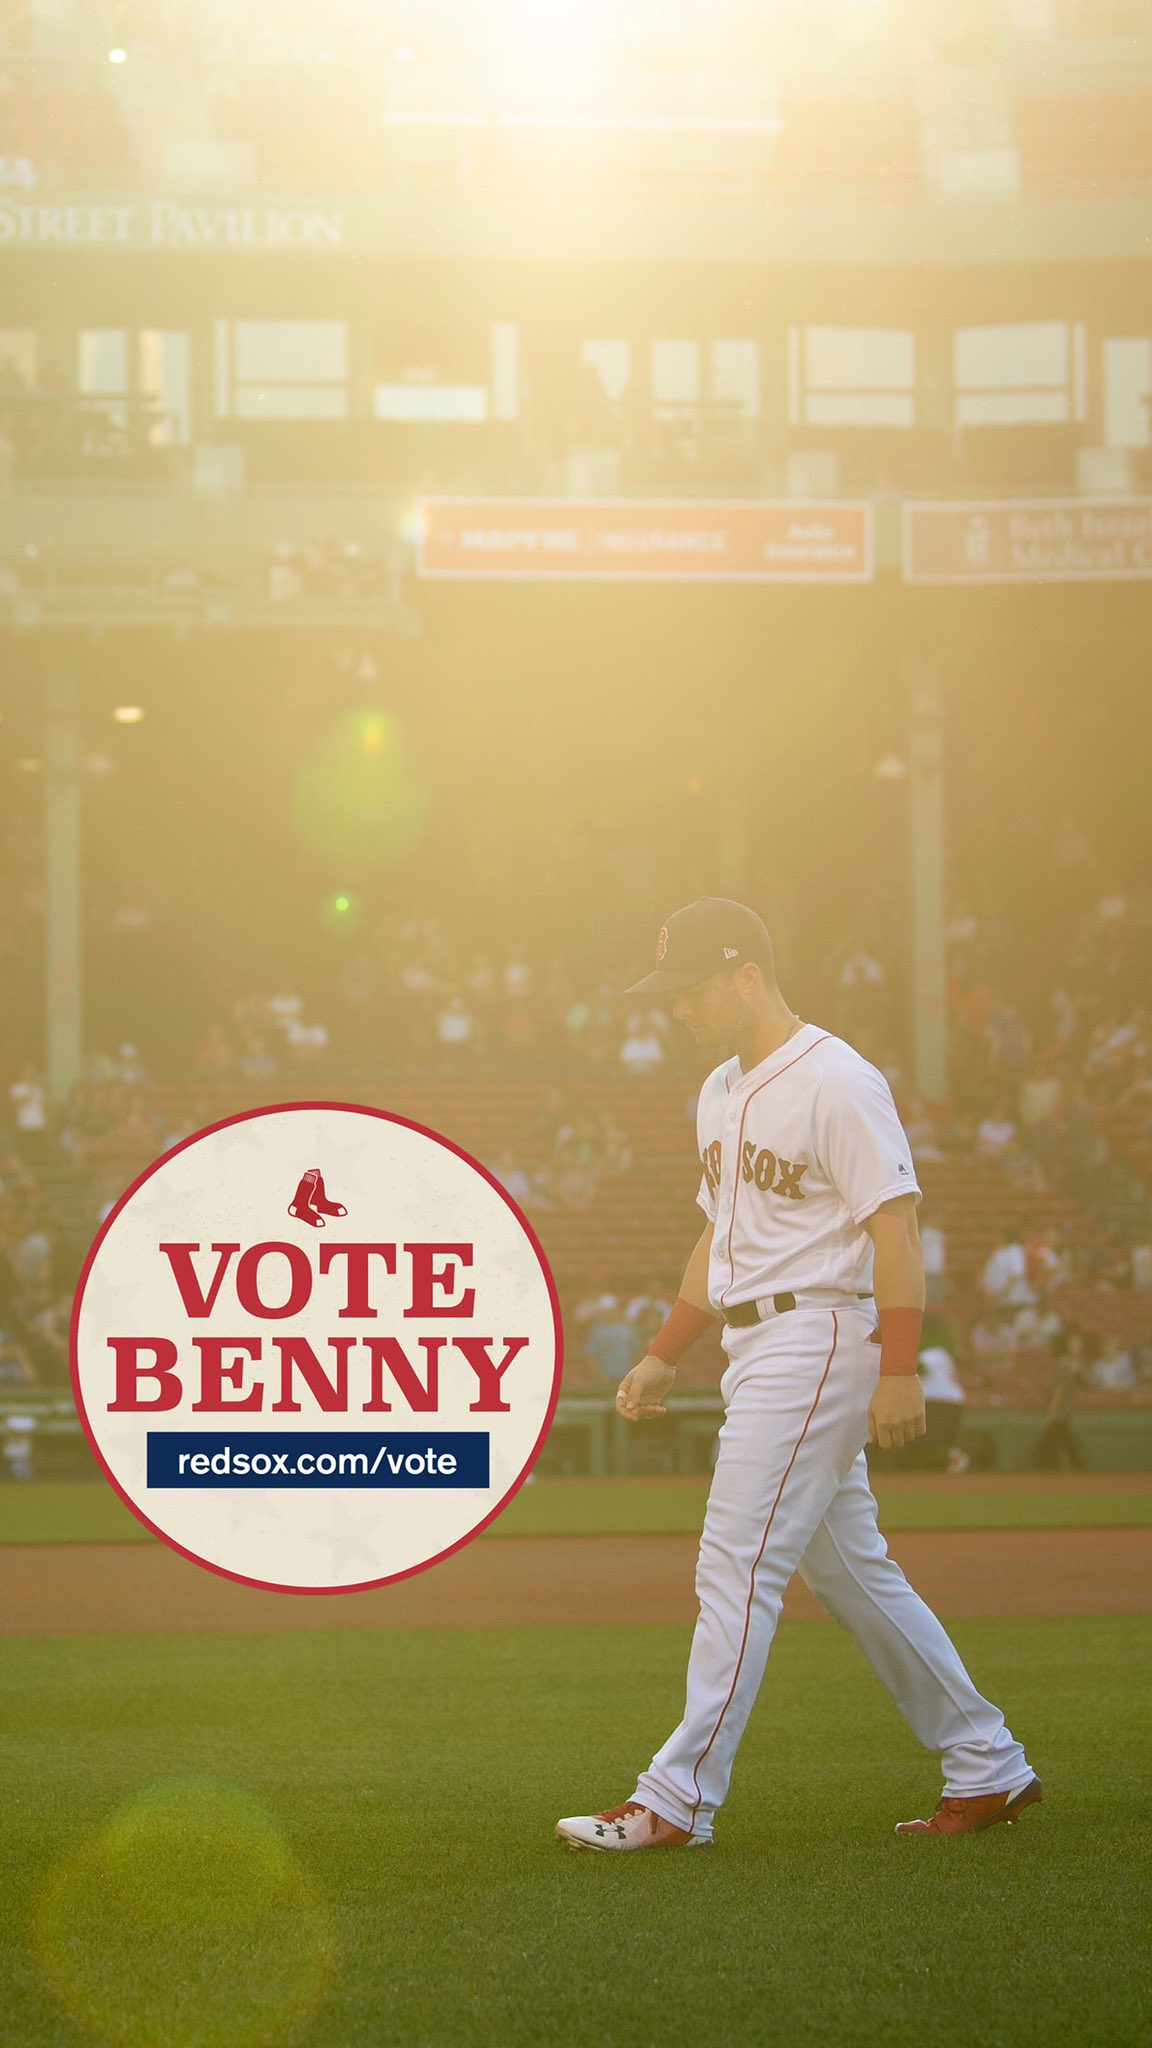 You already know what we did for #WallpaperWednesday   #VoteBenny: https://t.co/cwUXtl6gVW https://t.co/OMHcW6Z9Ai